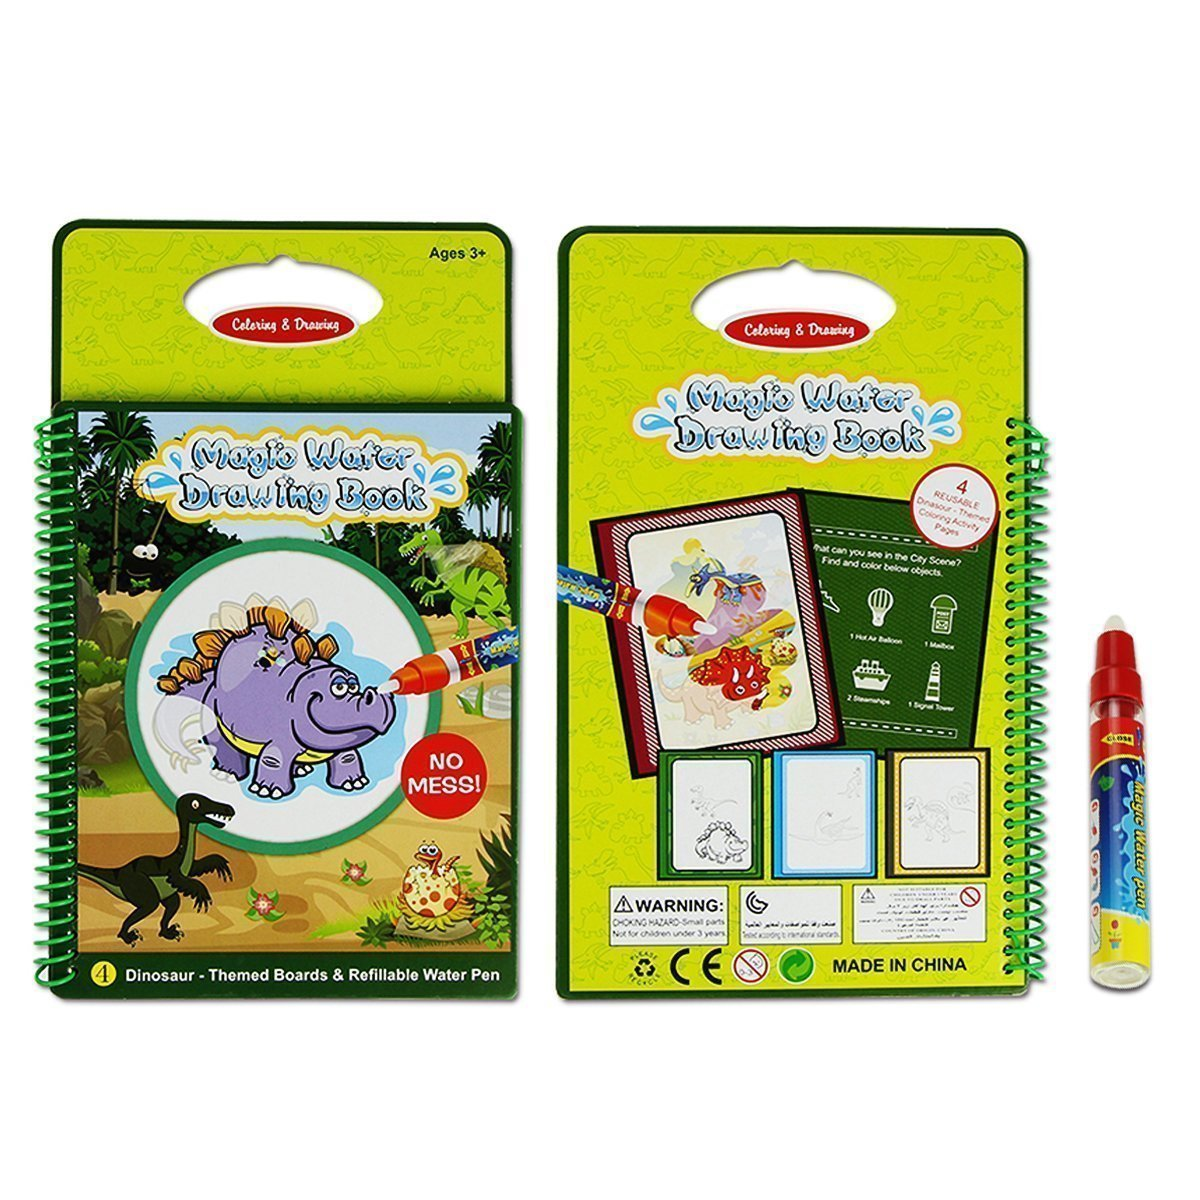 Reusable Water Drawing Doodle Card Book, Water Reveal,Paint with Water, No Chemicals, No Mess, Dinosaurs Water Doodle Pad,Educational Toy for Kids, Magic Pen Included, 4 Pages. by gogomall